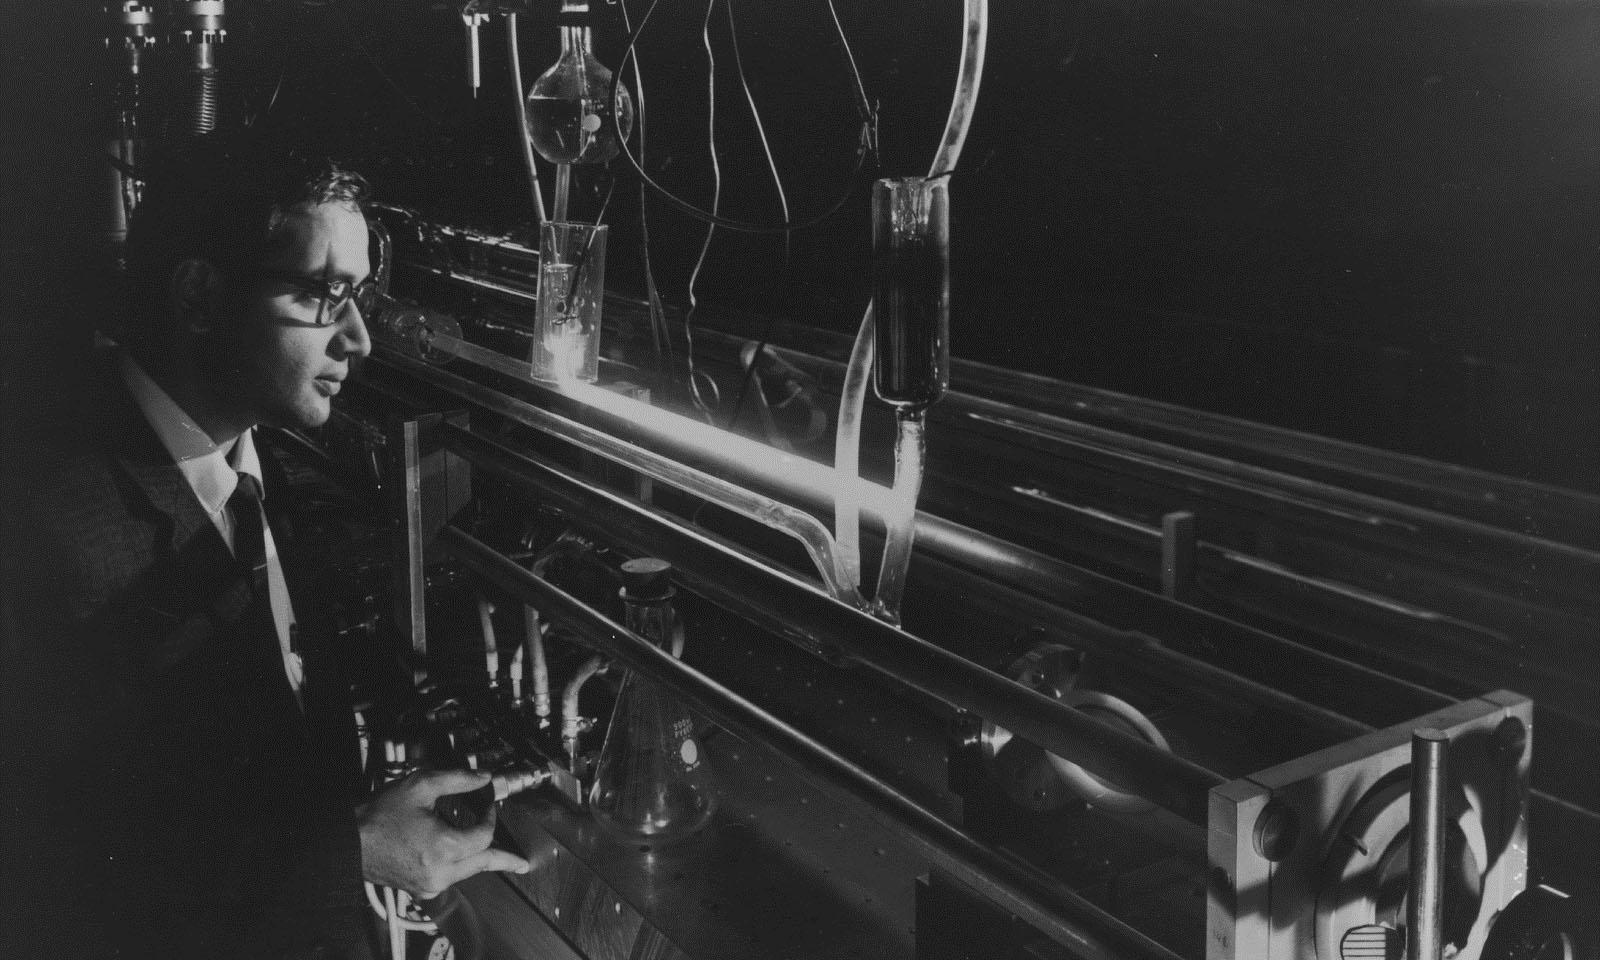 The History of Laser Cutting: From MASERs to CO2 Laser Cutting